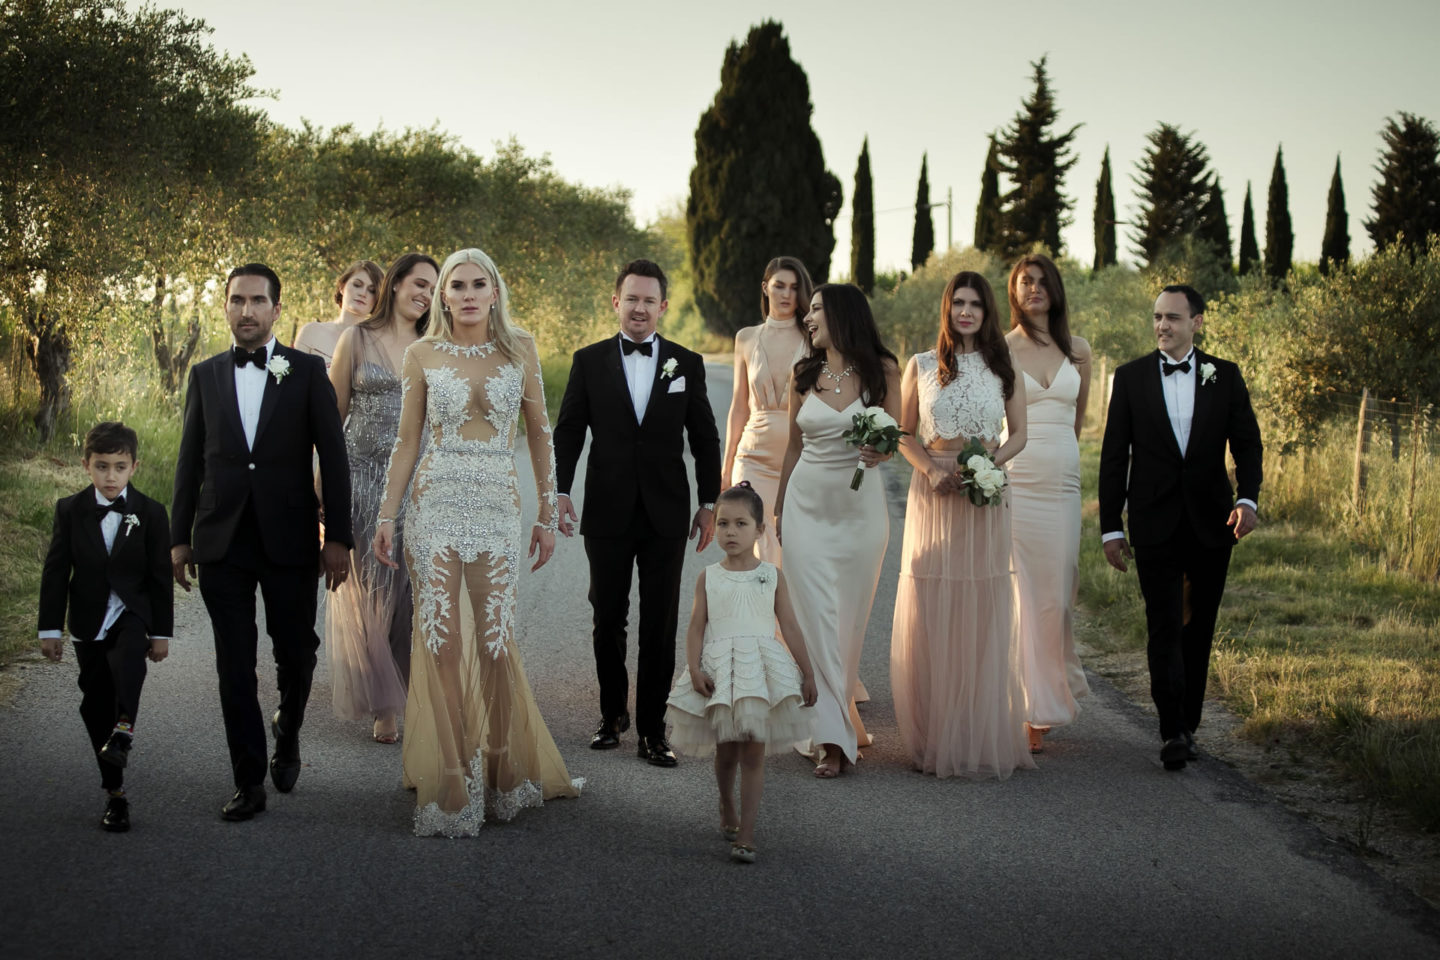 Countryside - 45 :: Exciting wedding in the countryside of Siena :: Luxury wedding photography - 44 :: Countryside - 45